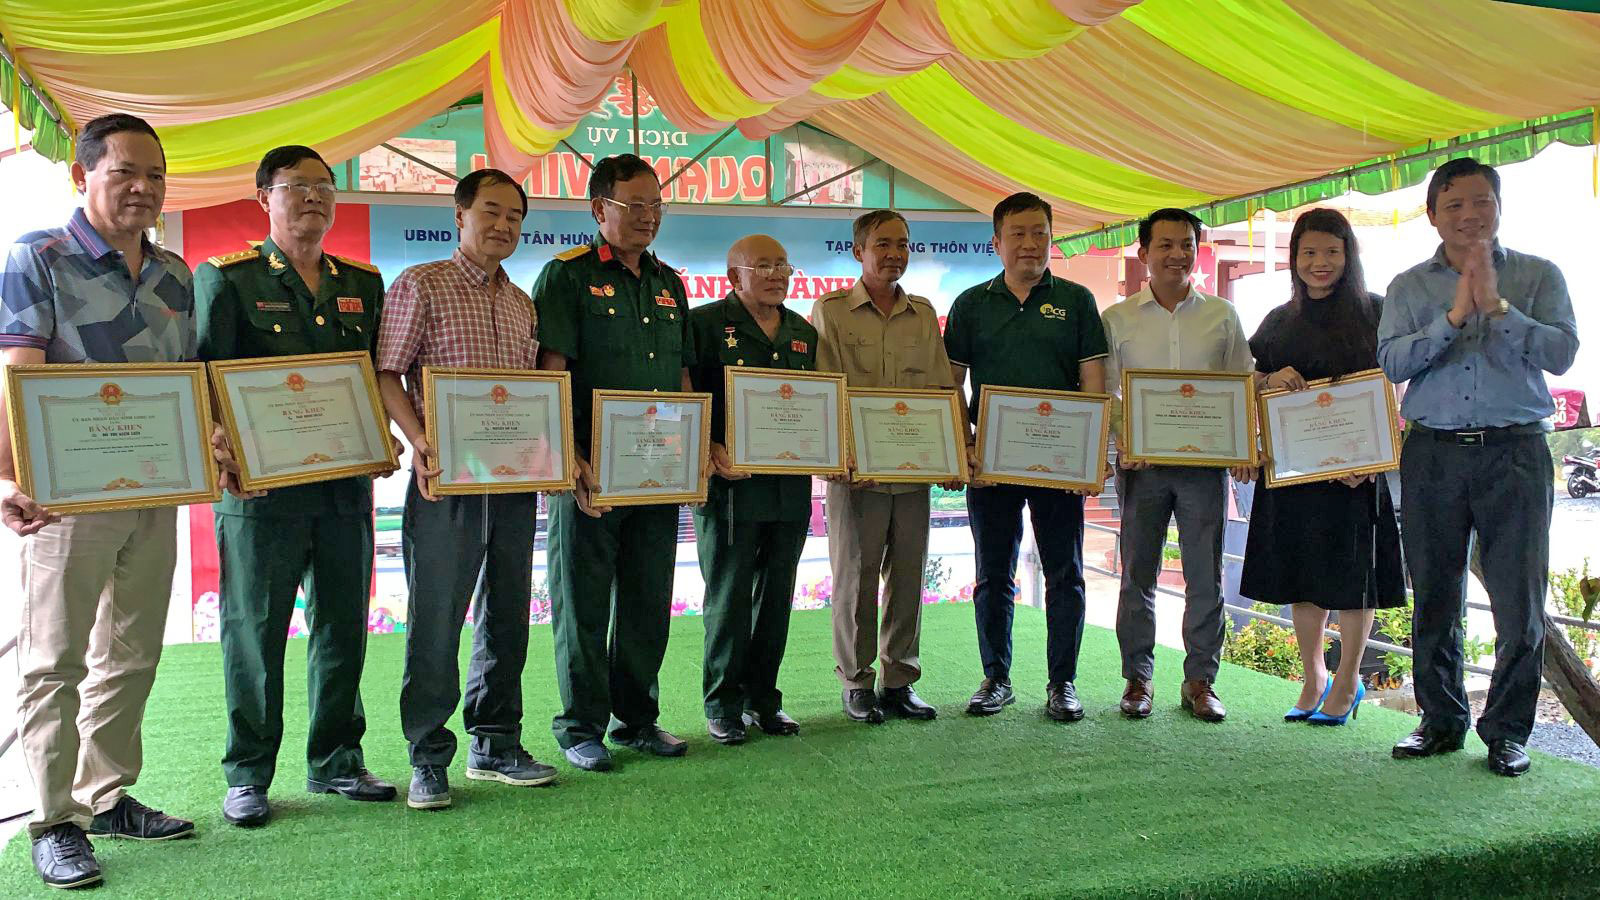 The collectives and individuals are commended for their contributions to the implementation of social work in Tan Hung district